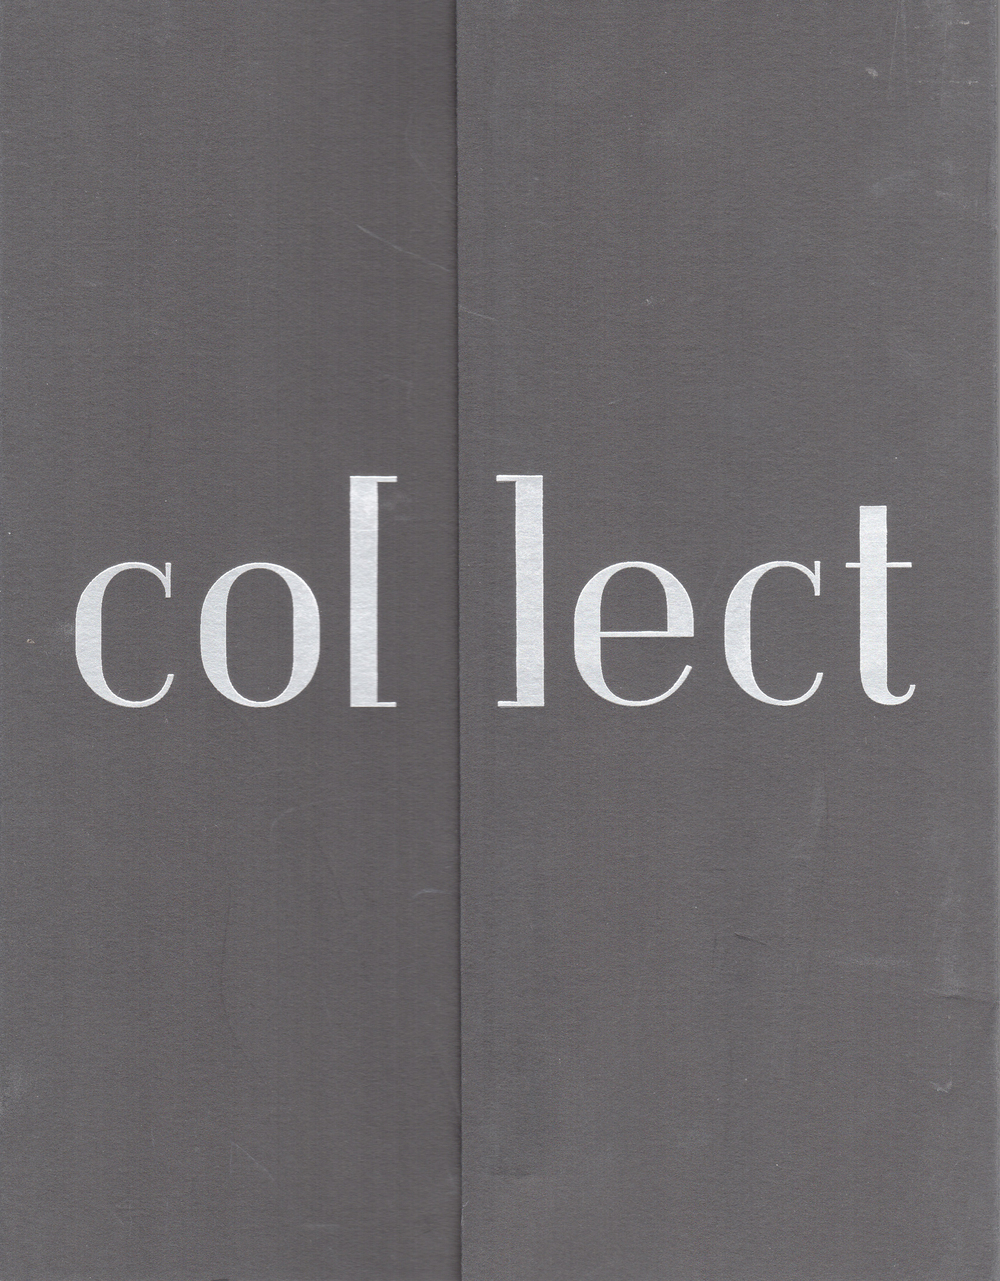 Collect 2004.jpeg